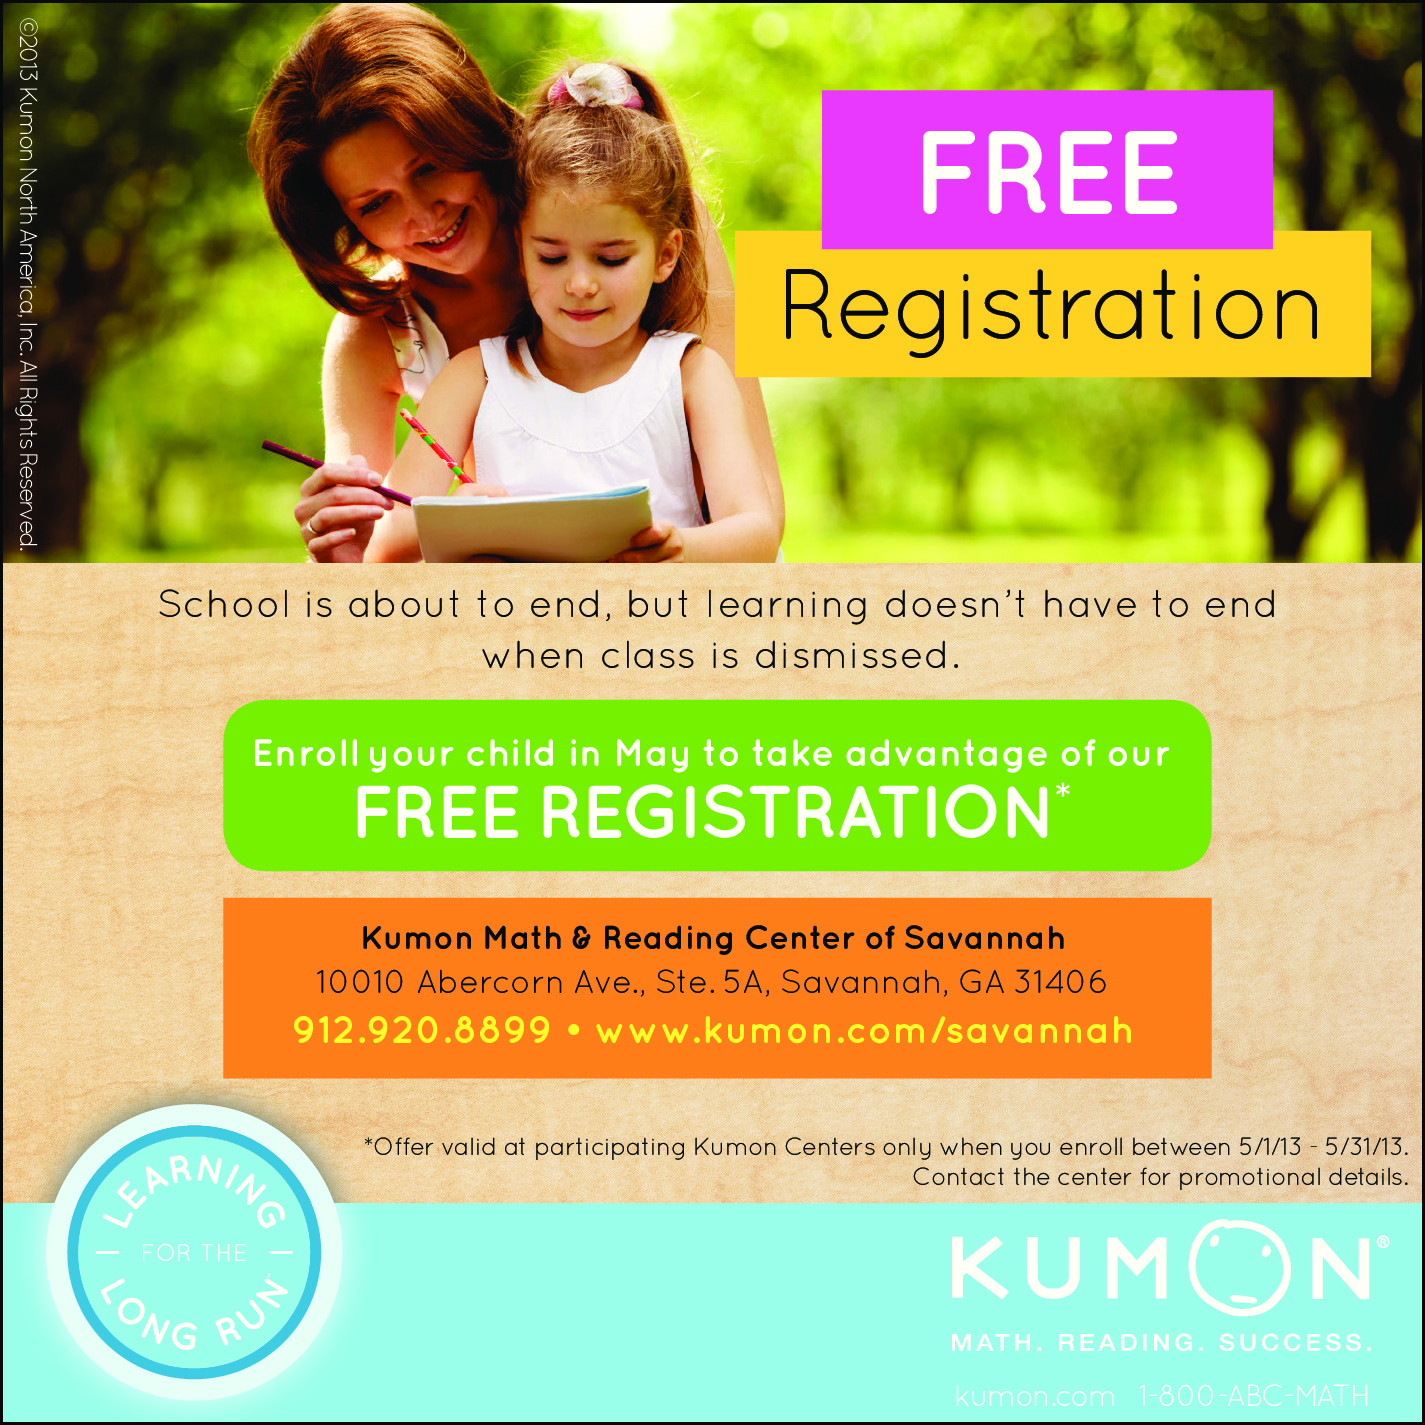 Kumon Savannah offers free registration during May 2013